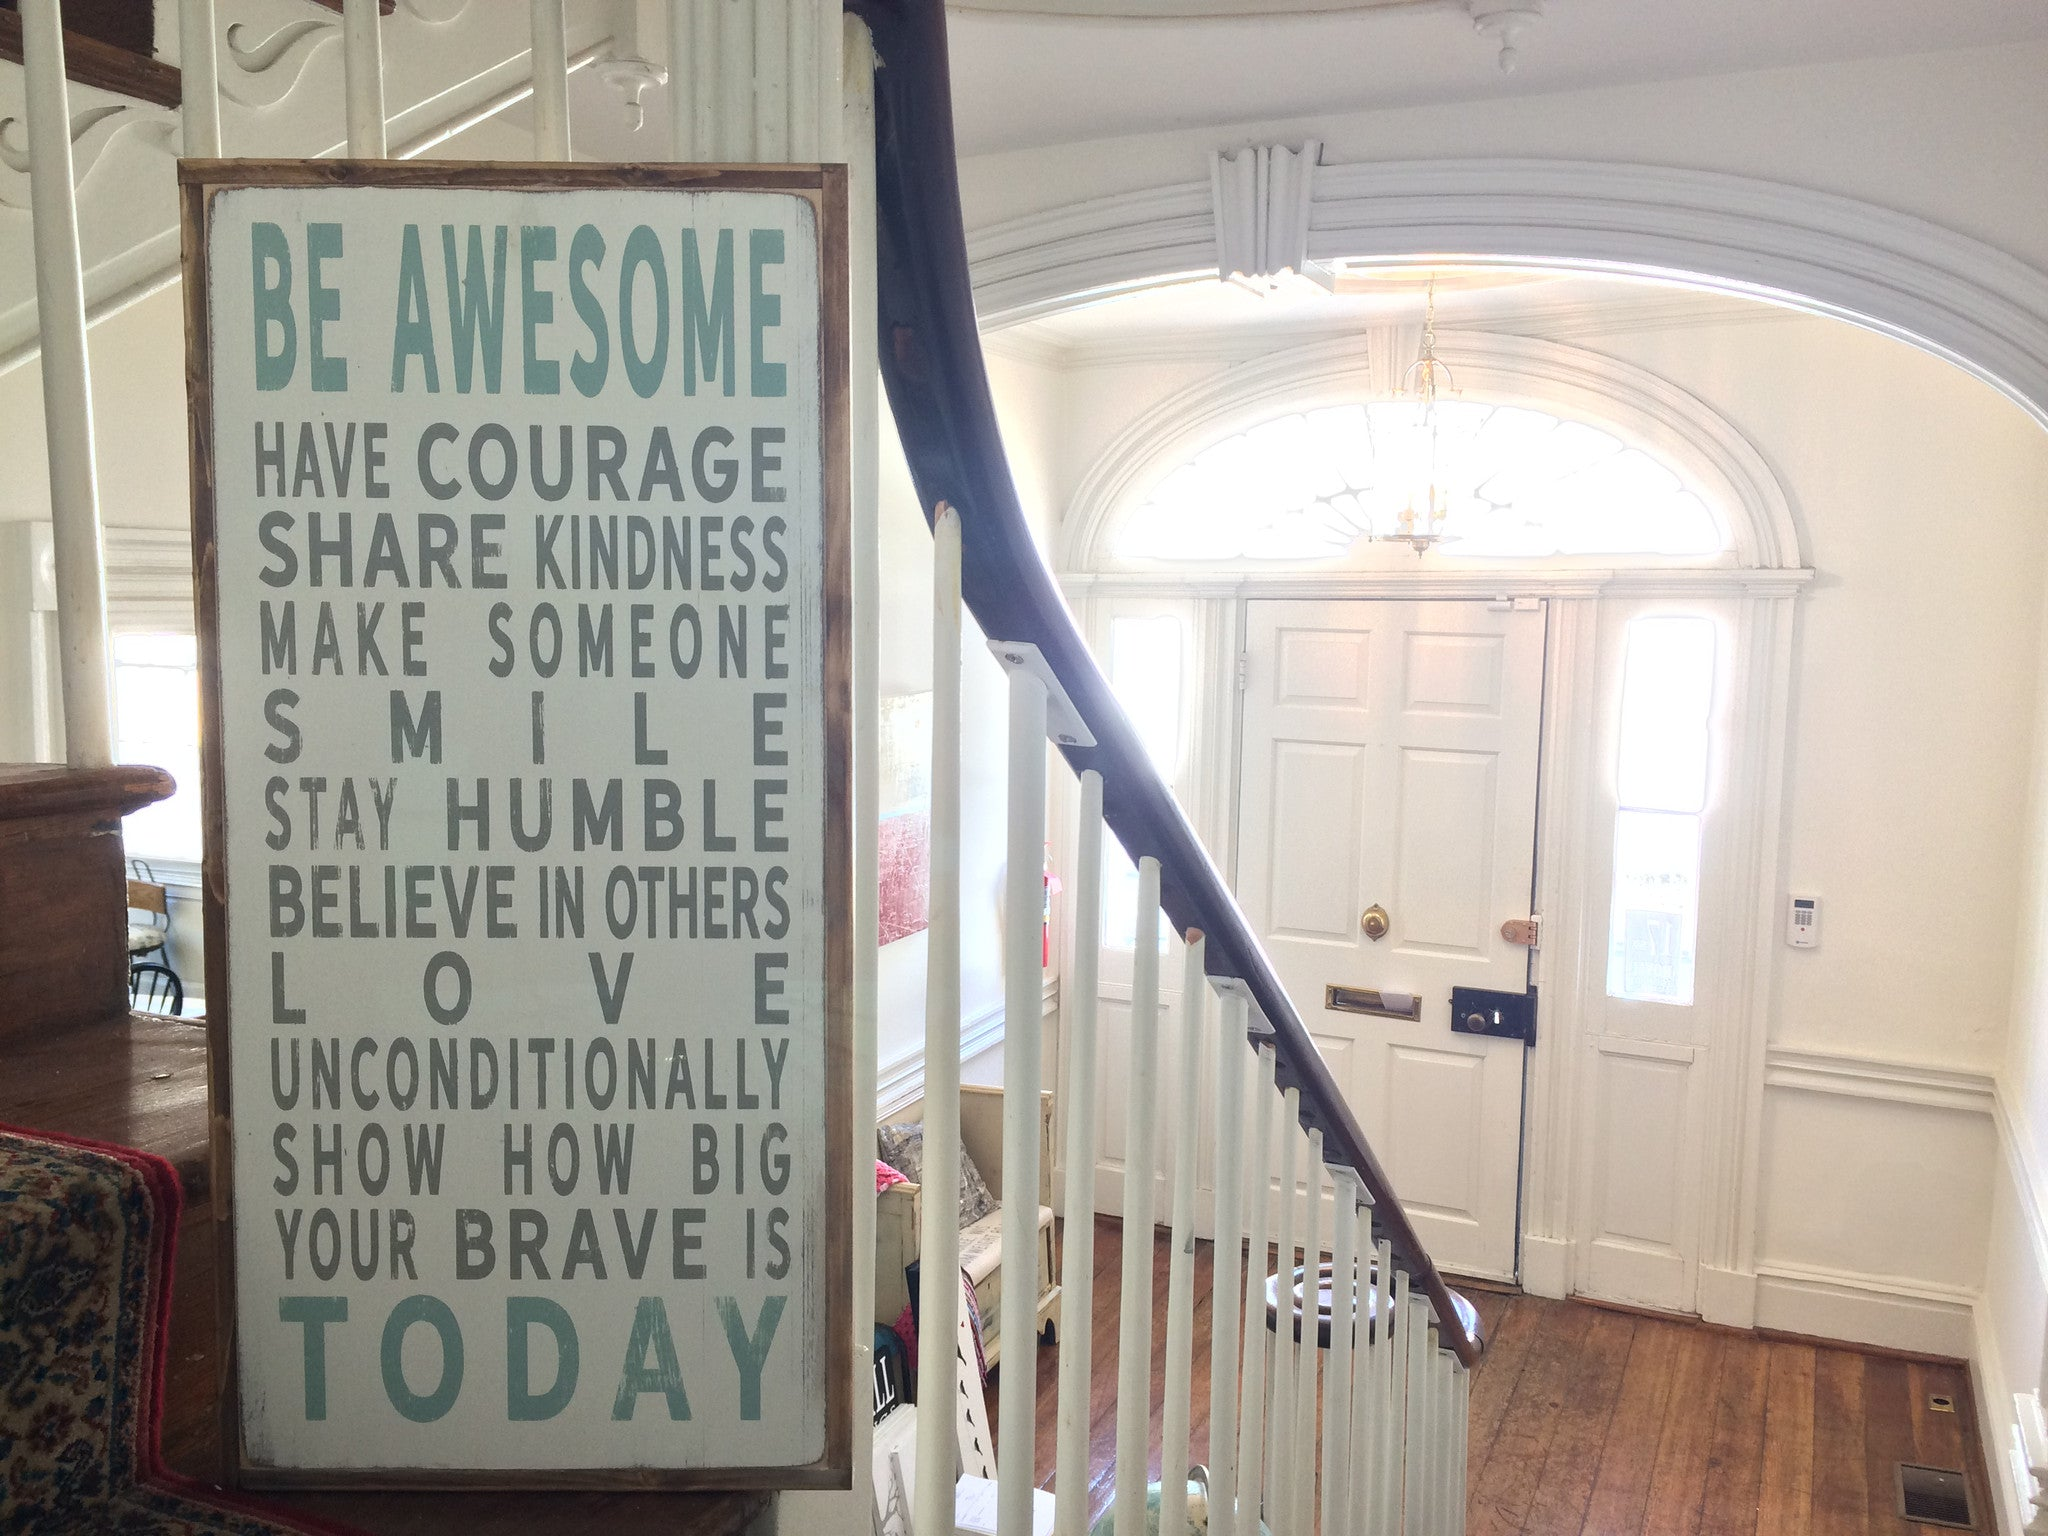 What Being Awesome Means to Us